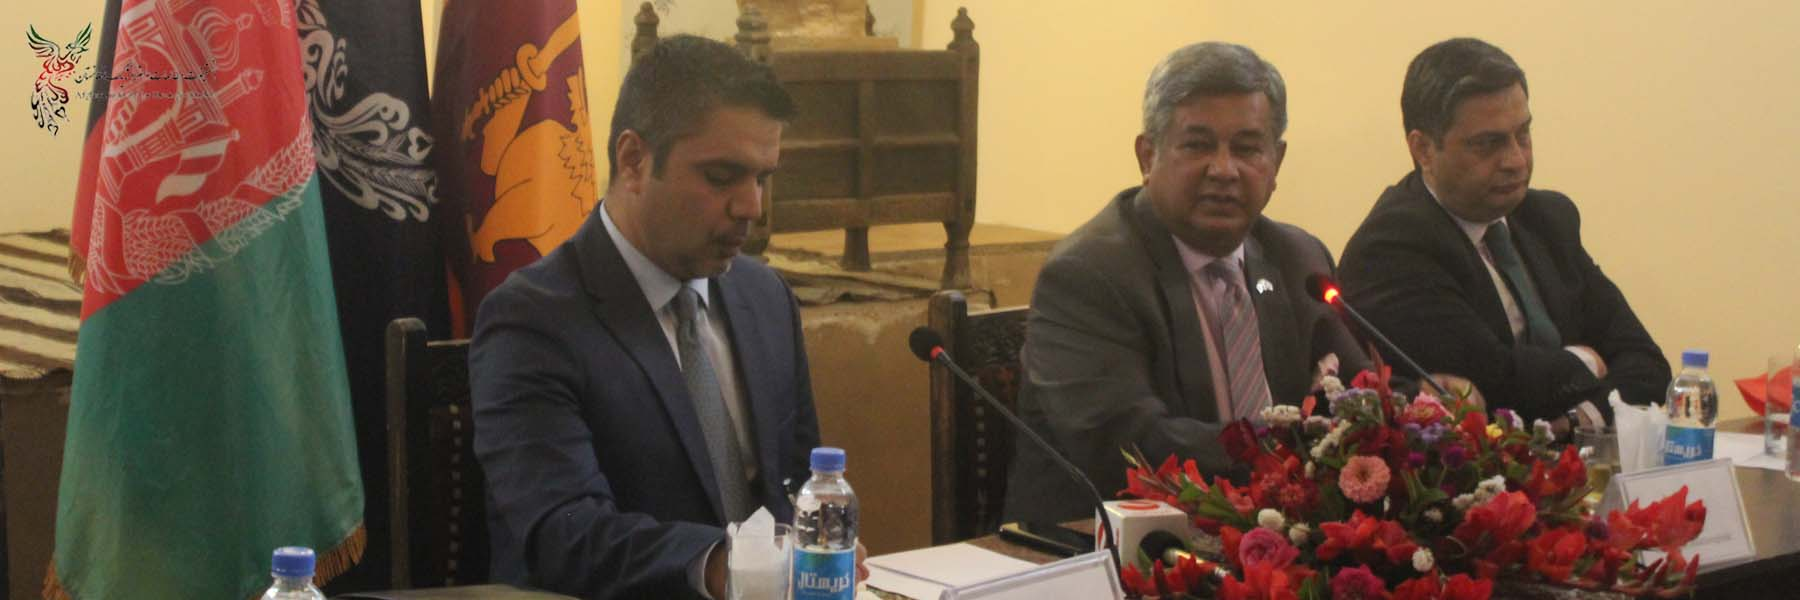 "AISS Holds Lecture on ""Sri Lanka's Experience in Counter-Insurgency and Peace Process"""